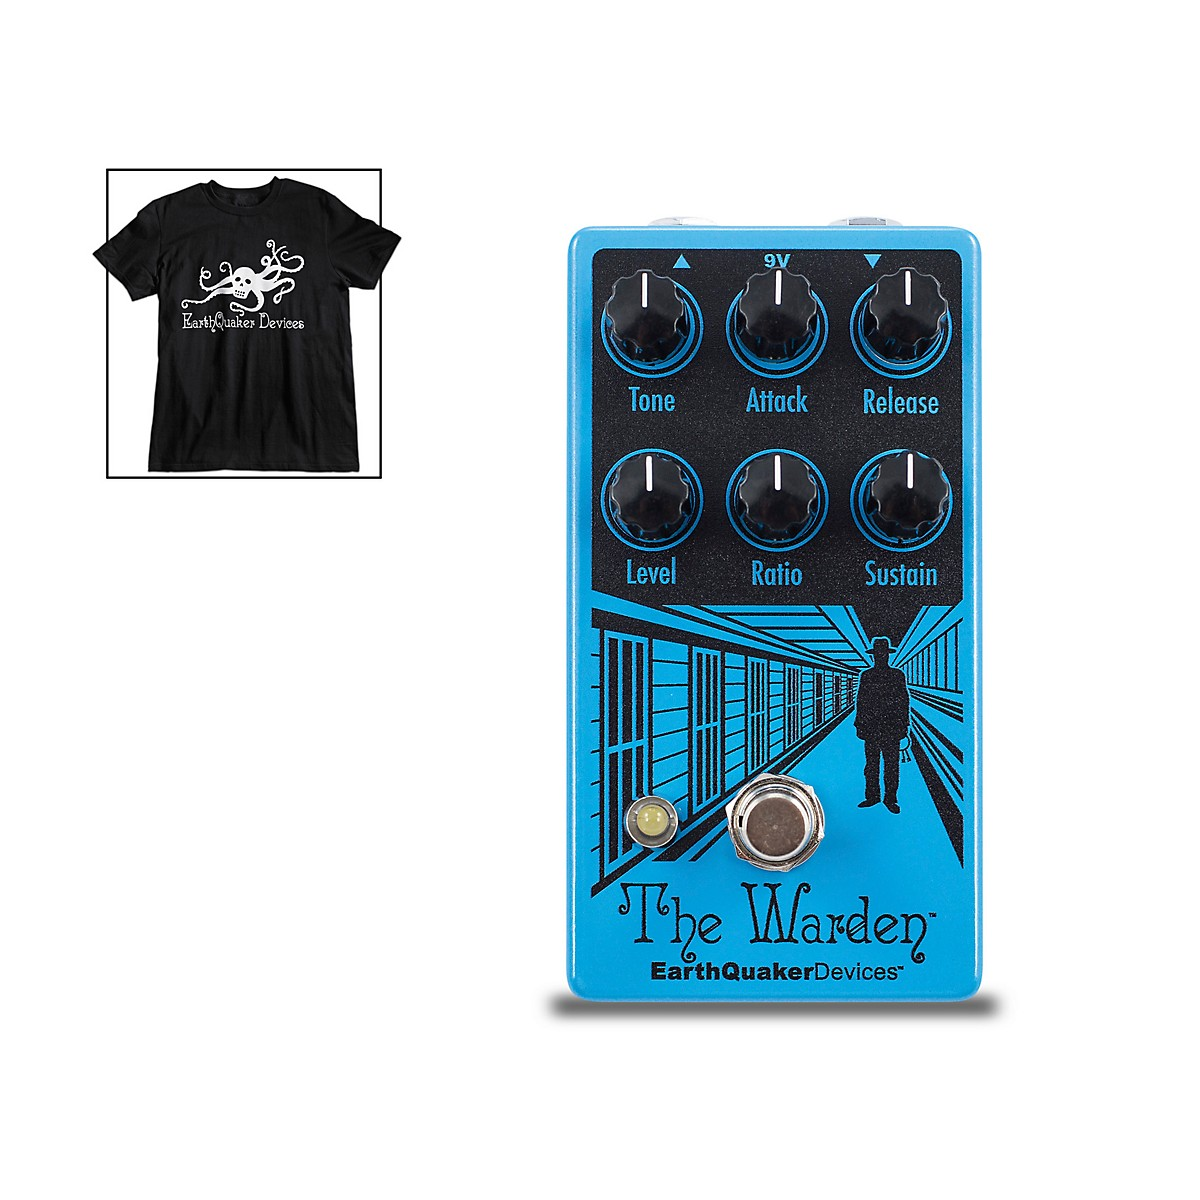 Earthquaker Devices The Warden V2 Optical Compressor Effects Pedal and Octoskull T-Shirt Large Black